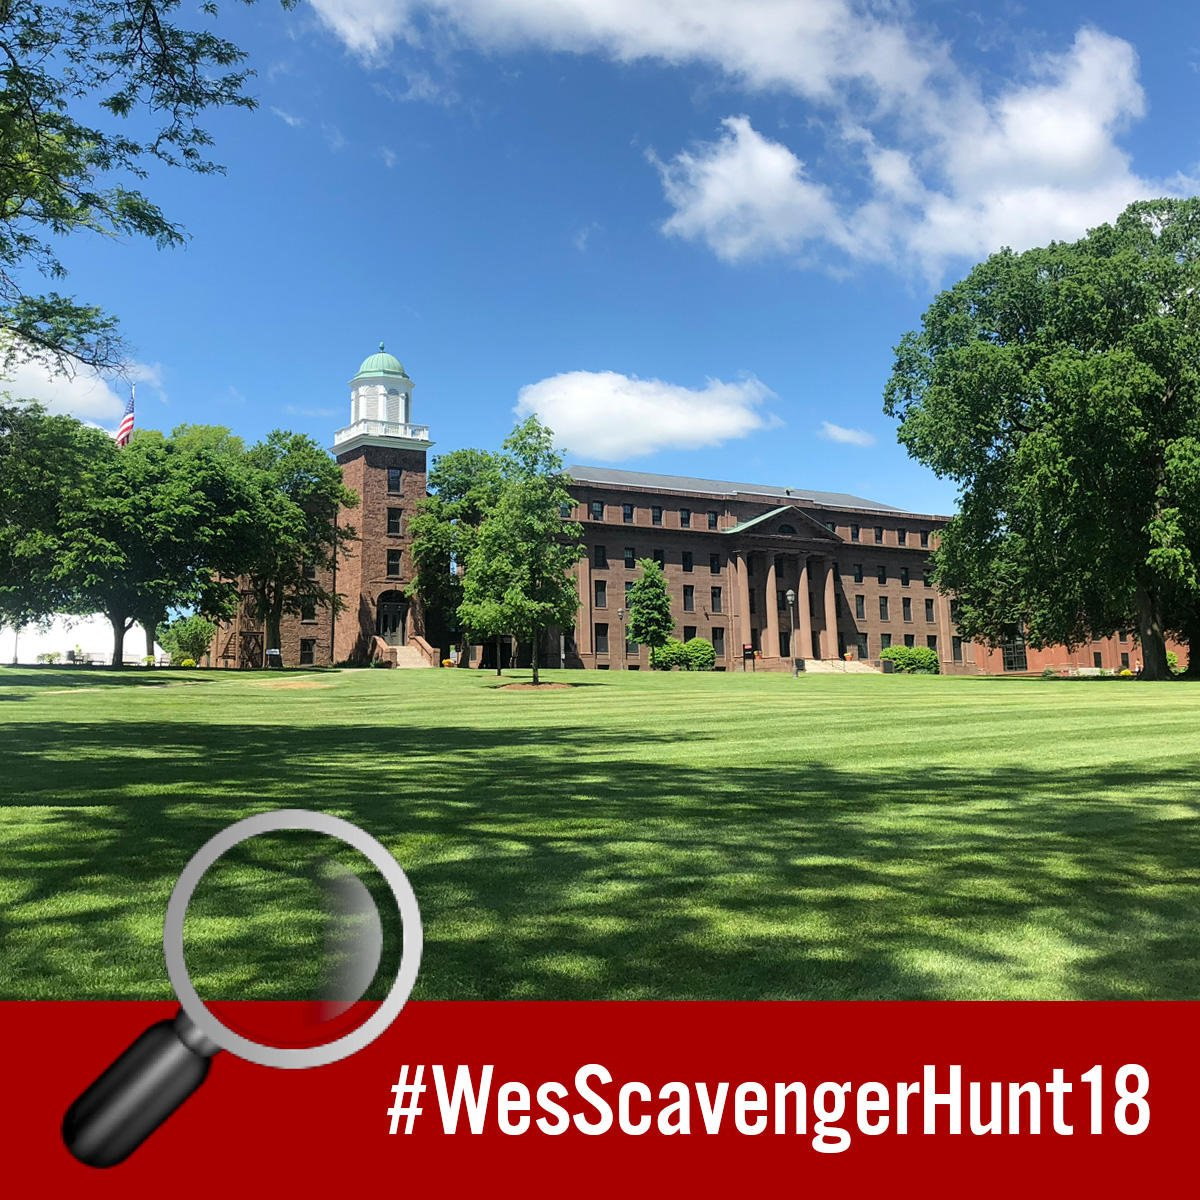 test Twitter Media - 🔍 Clue 8: Take a selfie with a bust of a former university president. Hint: Ssshhh! We're studying! 📚 #WesScavengerHunt18 #NationalScavengerHuntDay    More clues: https://t.co/iwQIXnDb7K https://t.co/zuclswt8N9